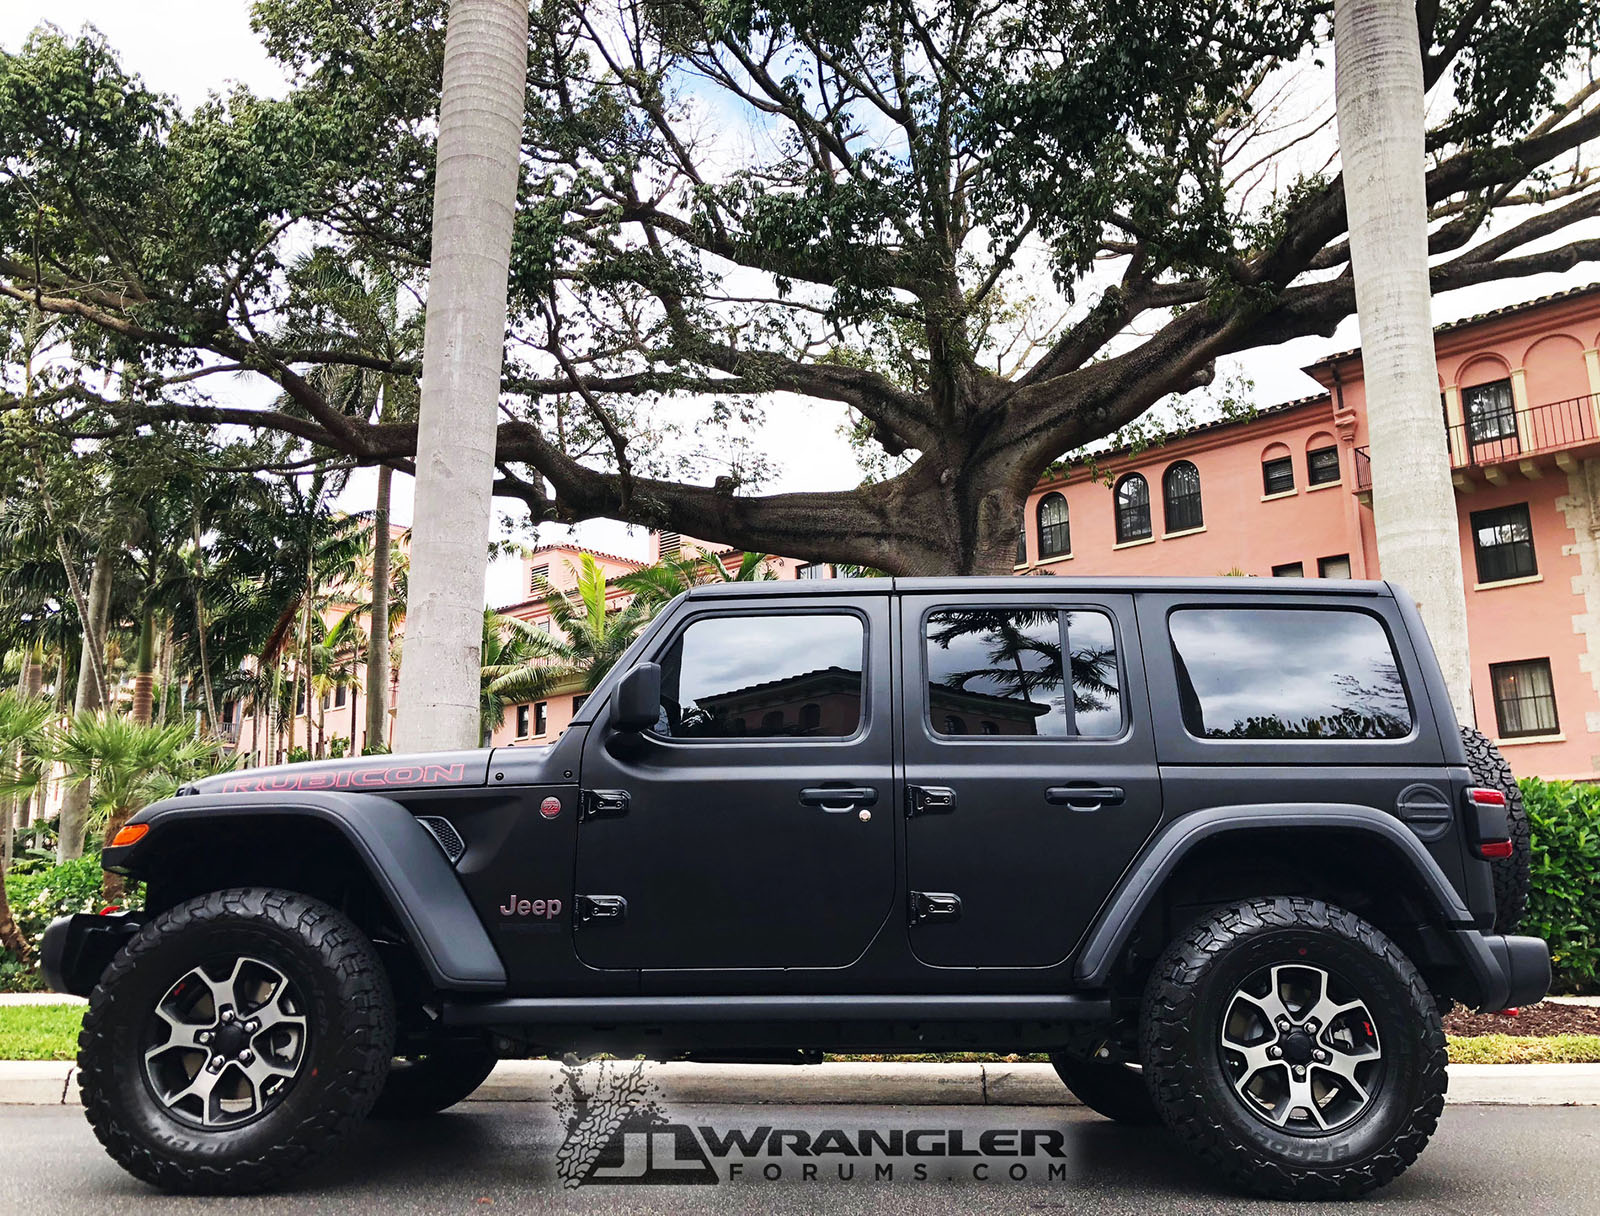 Black Jeep Wrangler Jl Wrapped In Xpel Stealth Protection